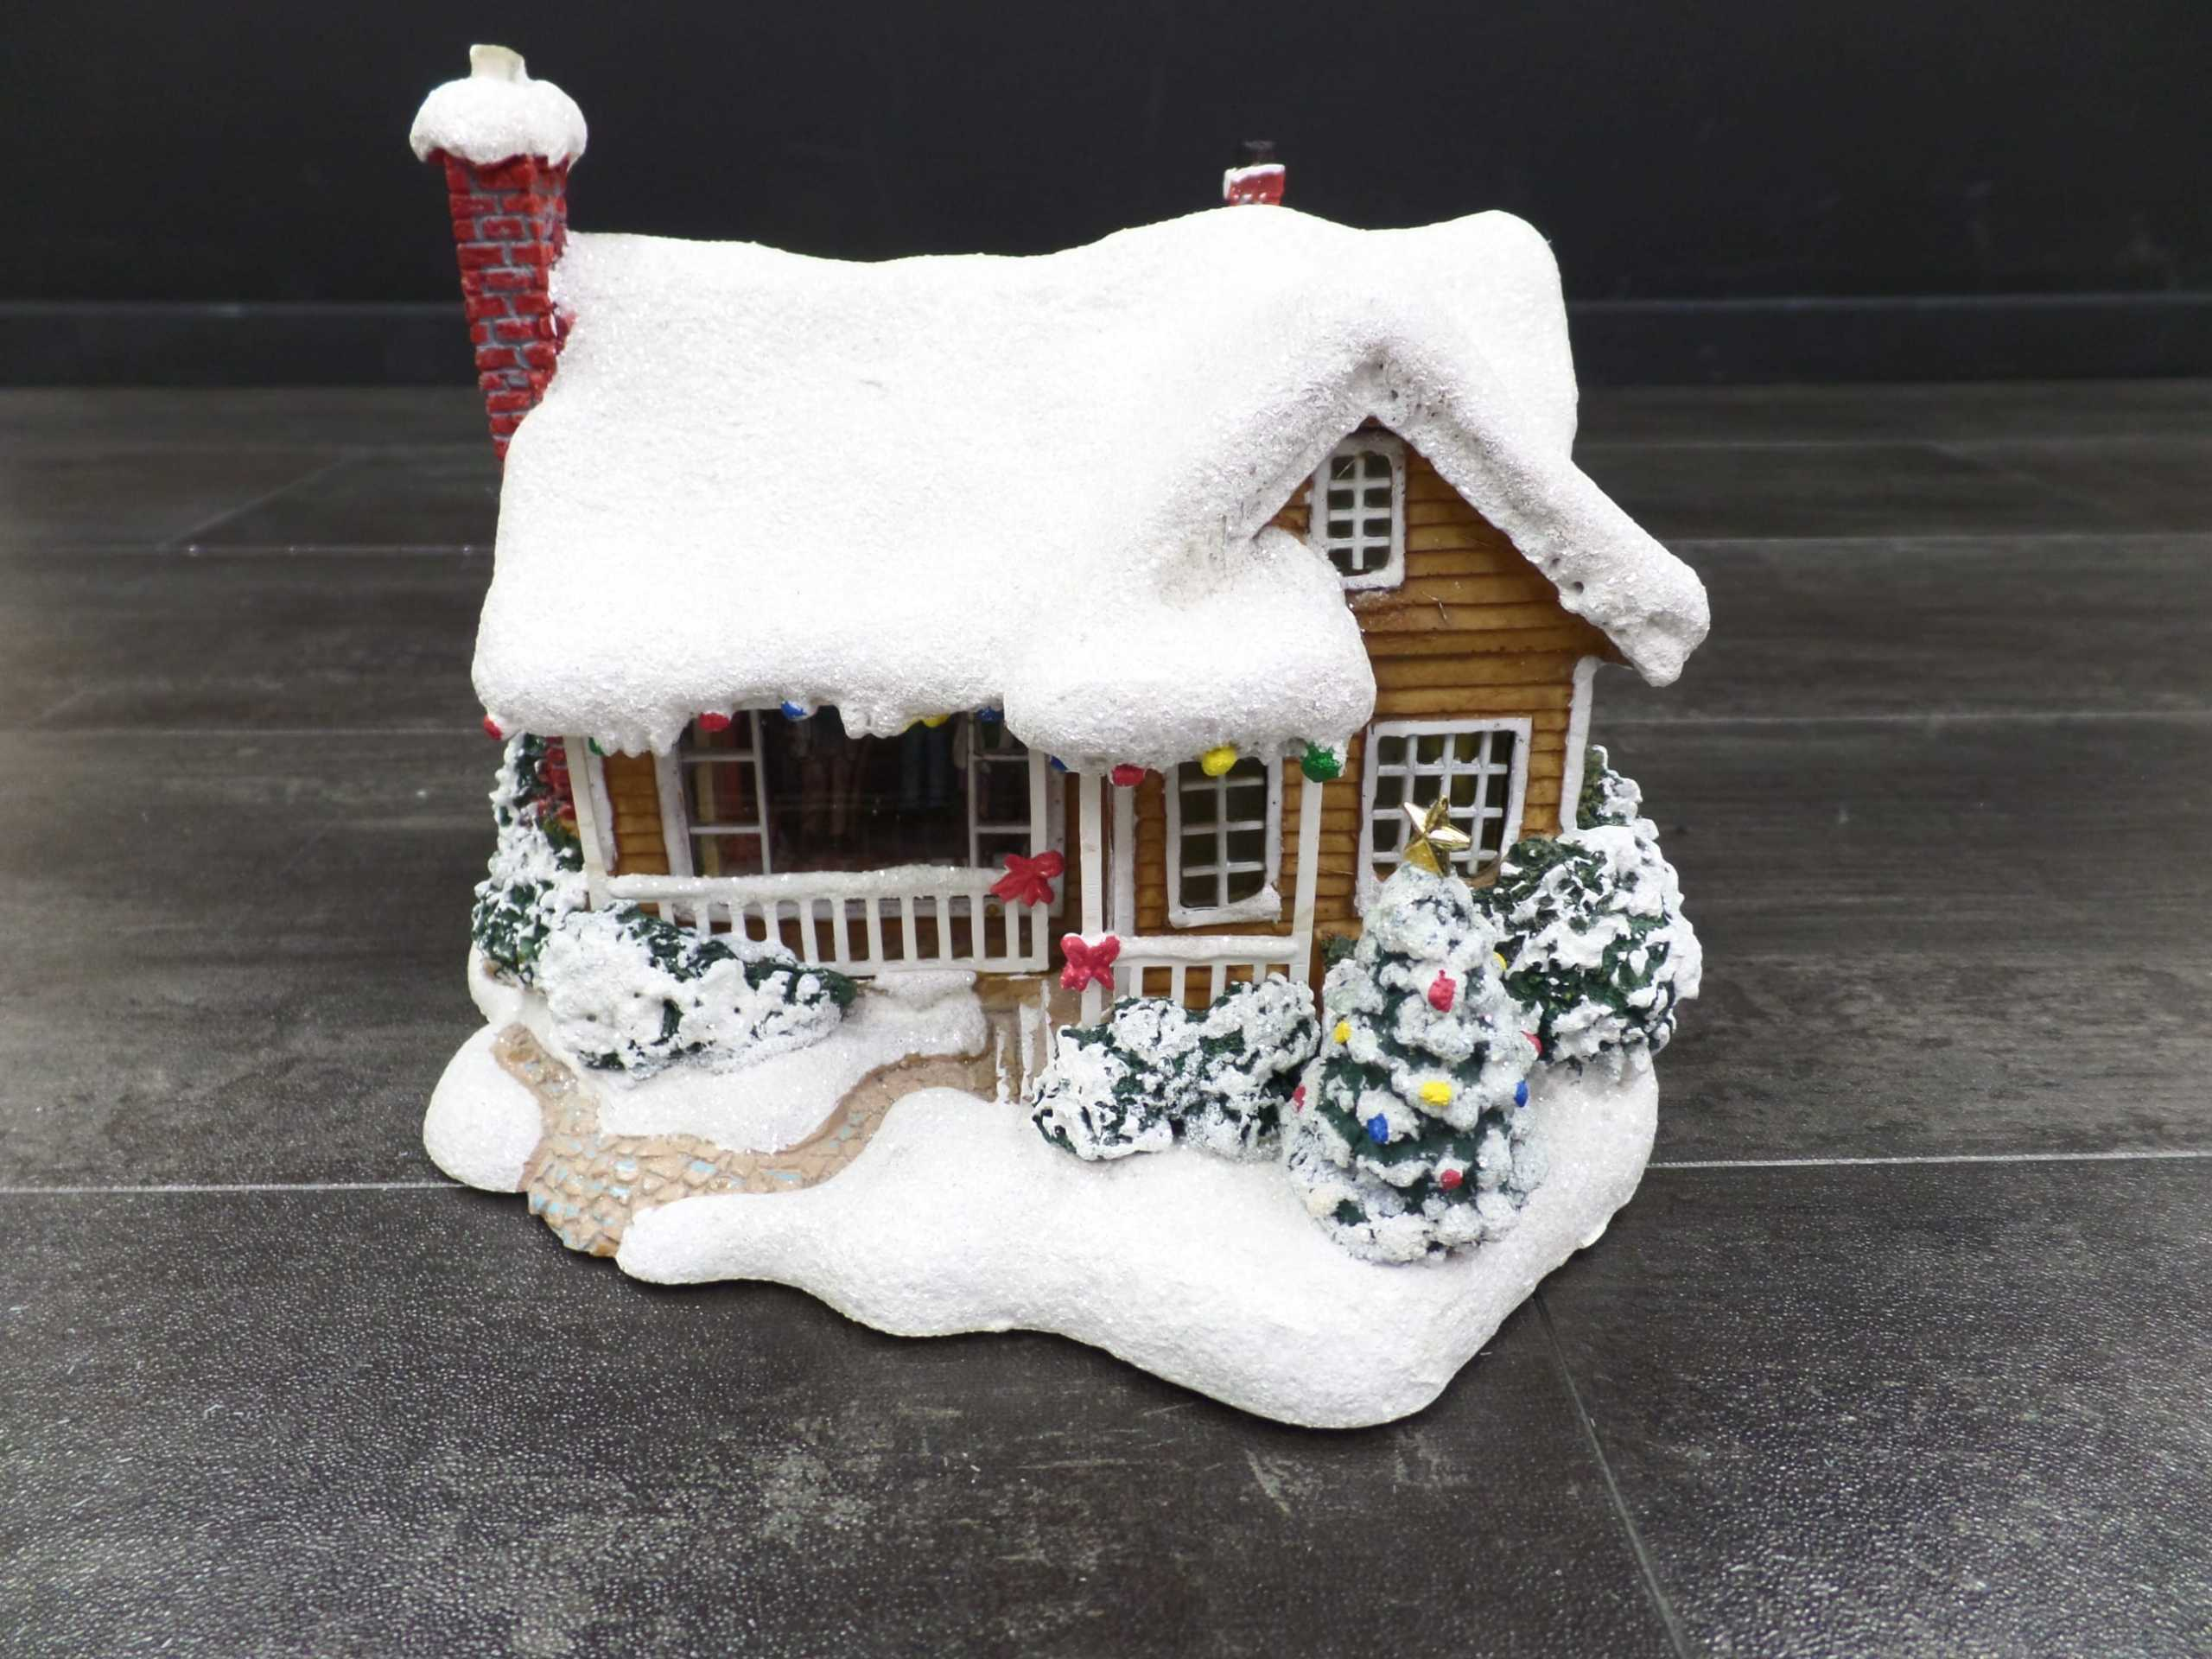 2008 THOMAS KINKADE CHIRSTMAS VILLAGE HOUSE <br/> Donated by: WPBS SUPPORTER <br/> Valued at: $46 <br/> Buy It Now: $36